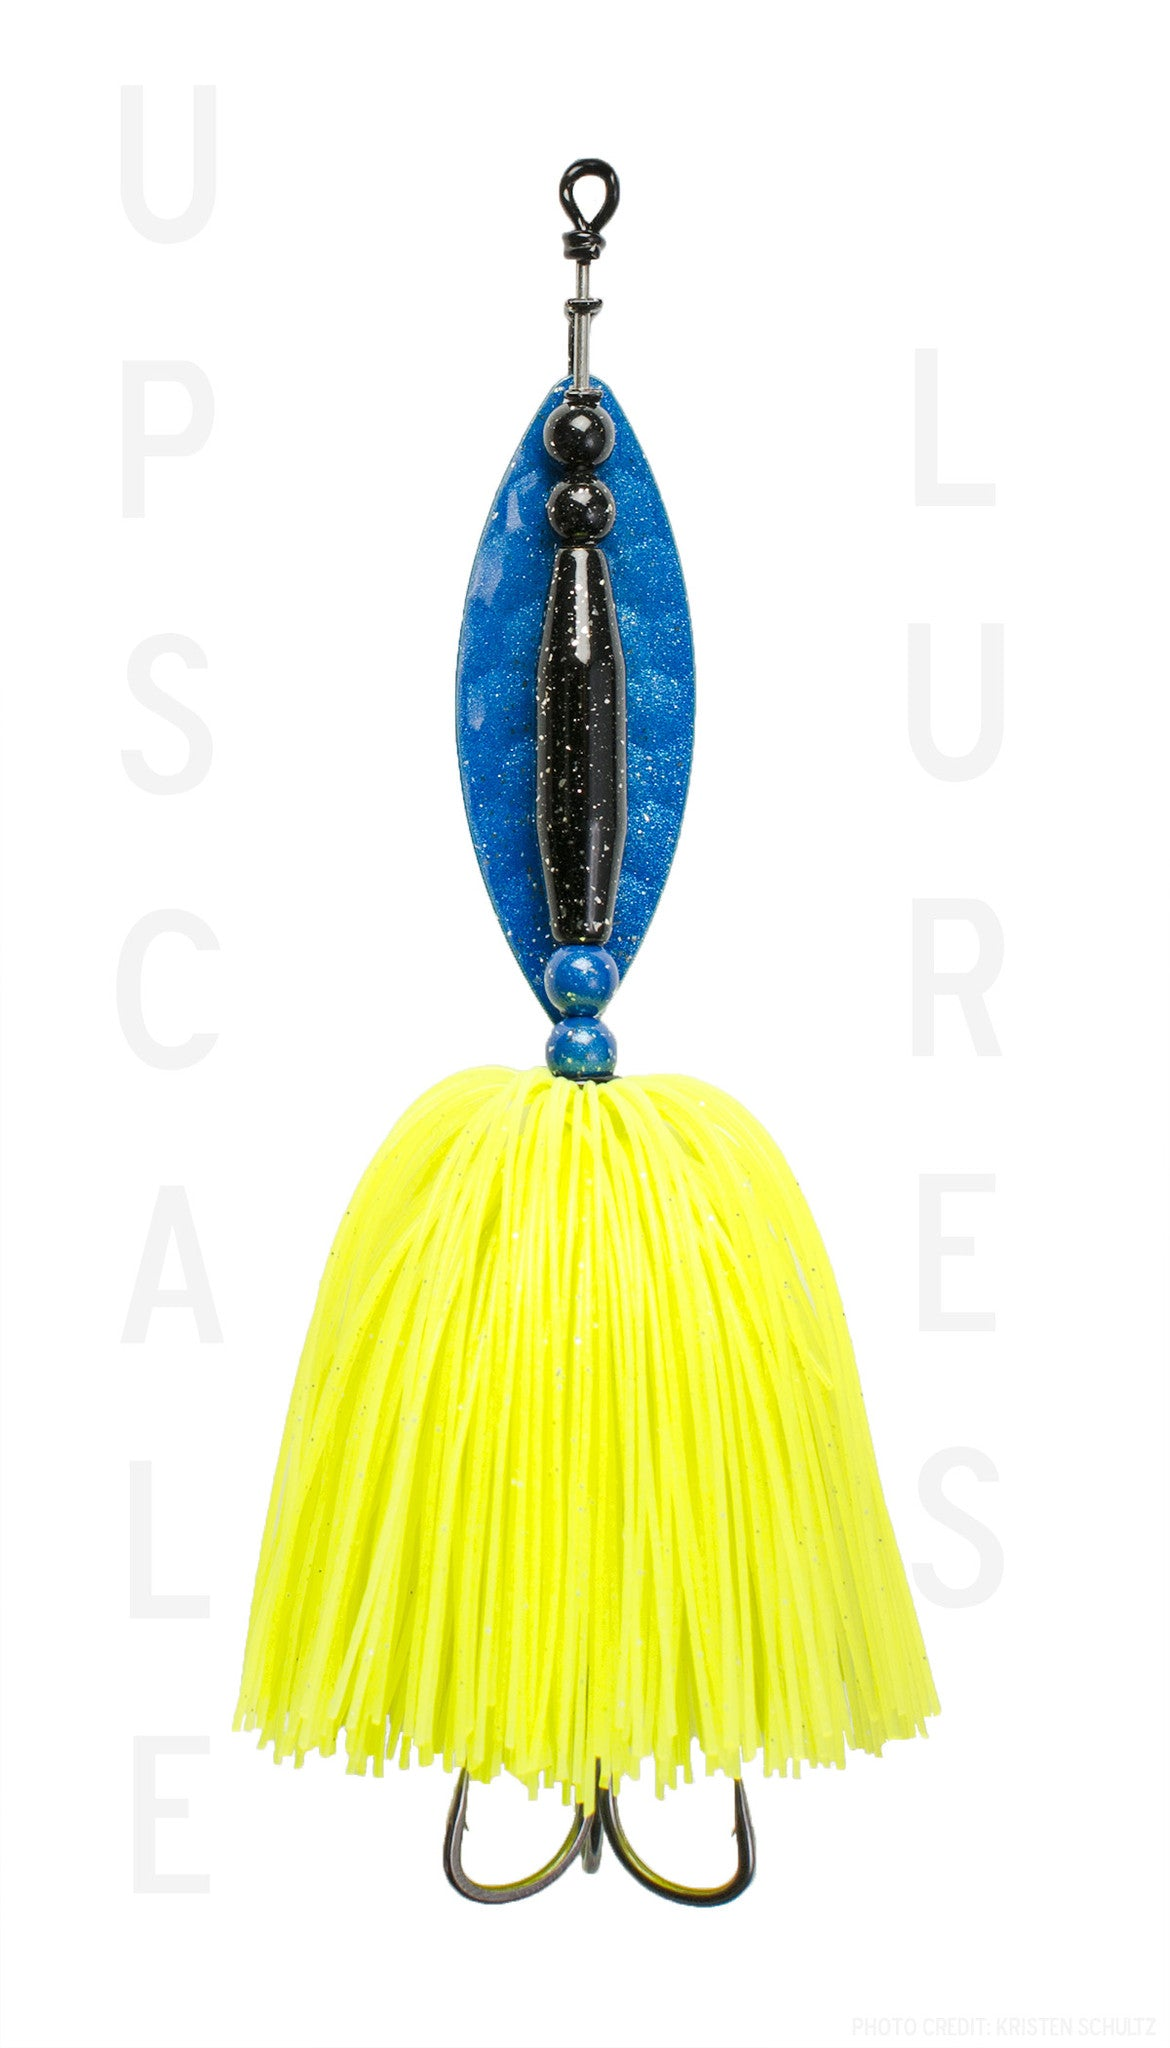 Nifty Fifty L Spinner Bait Blue/chartreuse